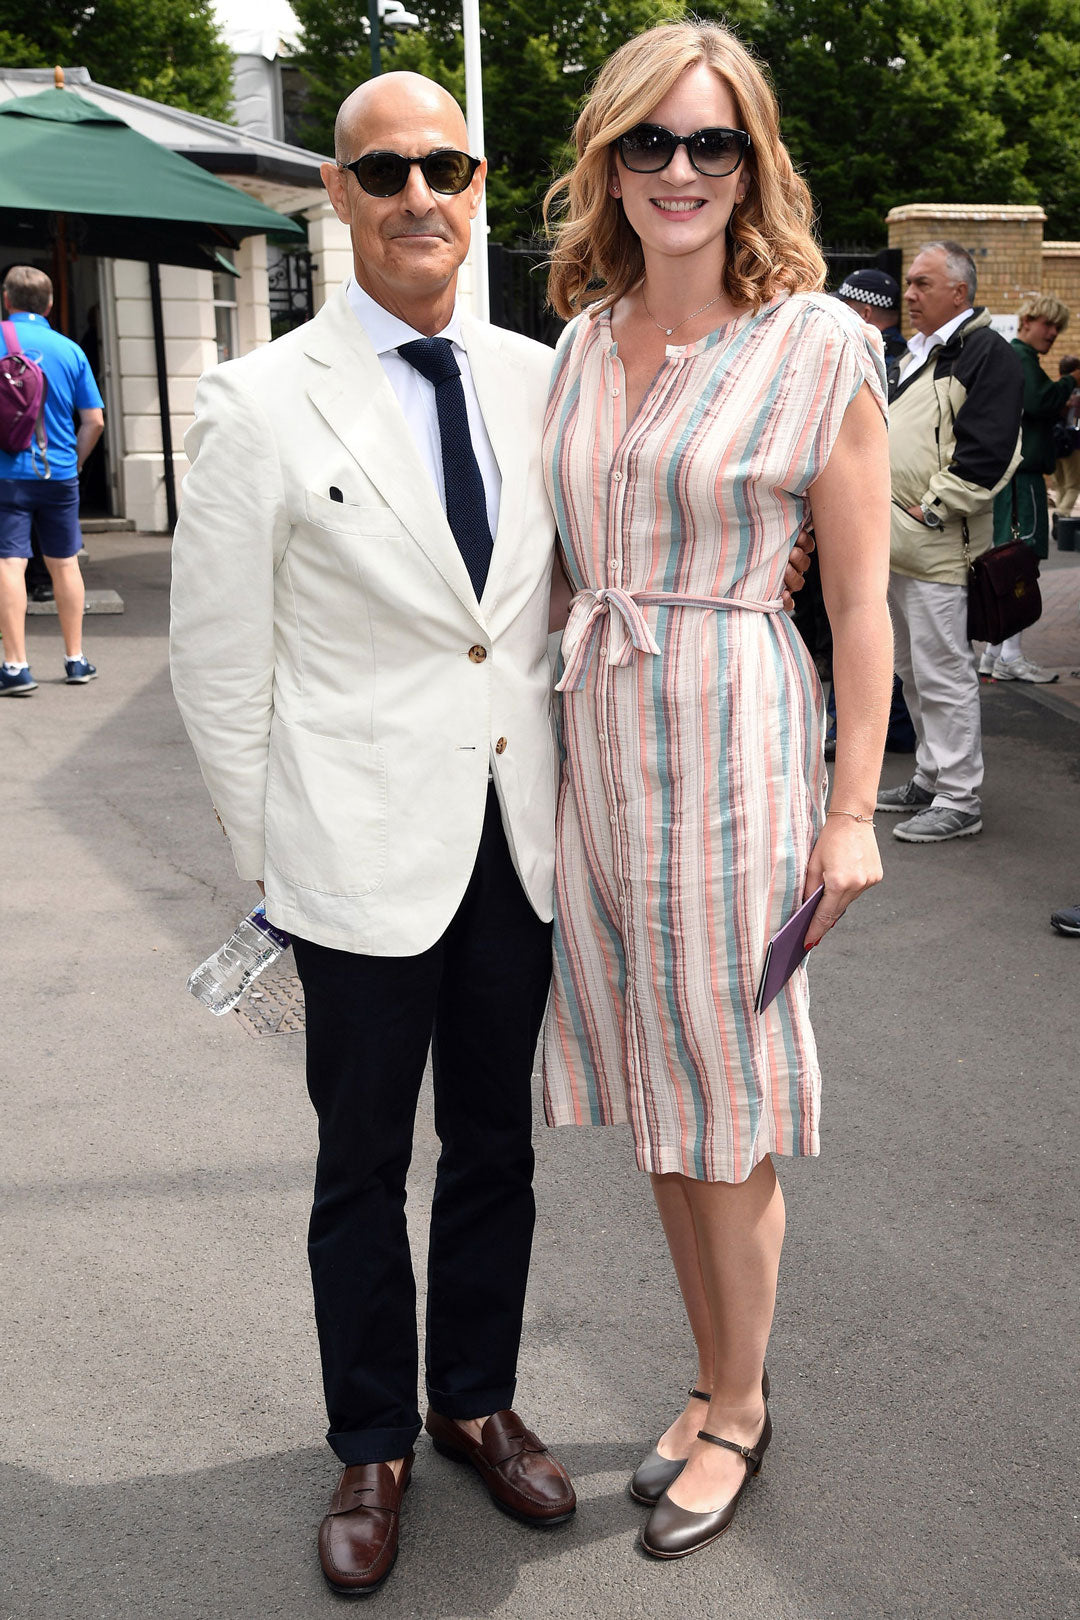 Stanley Tucci at Wimbledon wearing white suit sunglasses beside woman